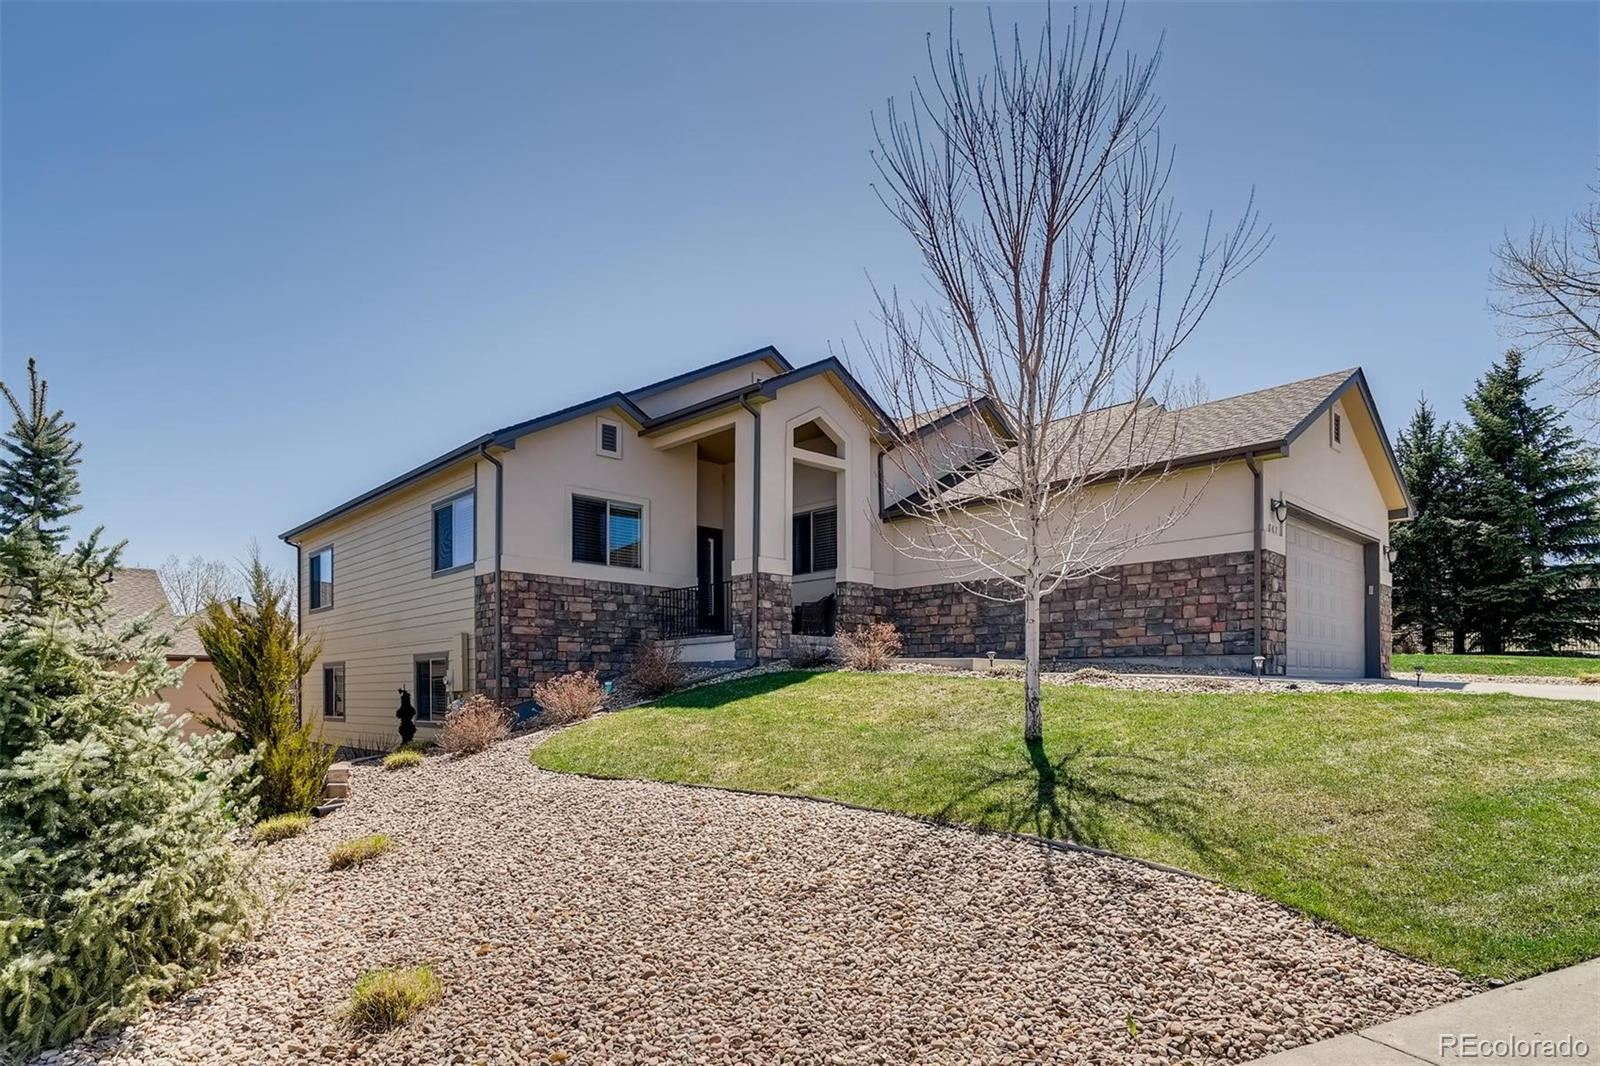 847 Stafford Circle, Castle Rock, CO 80104 - #: 6144893